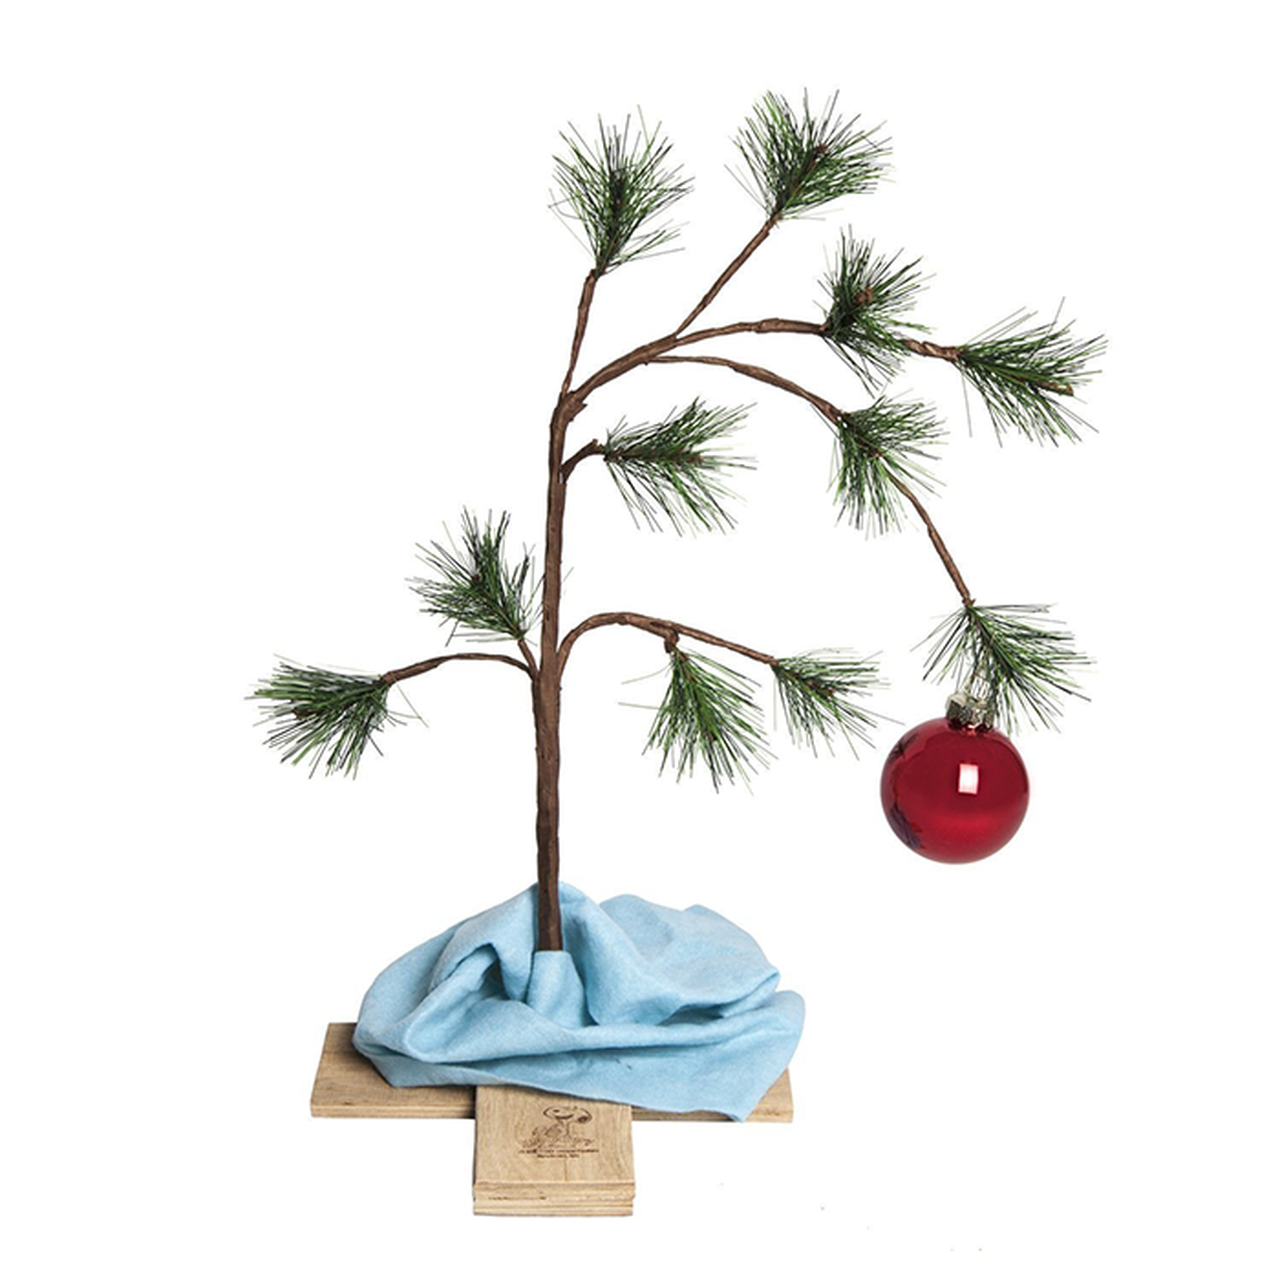 Peanuts Christmas Musical.24 Peanuts Lonely Christmas Tree With Blanket And Music